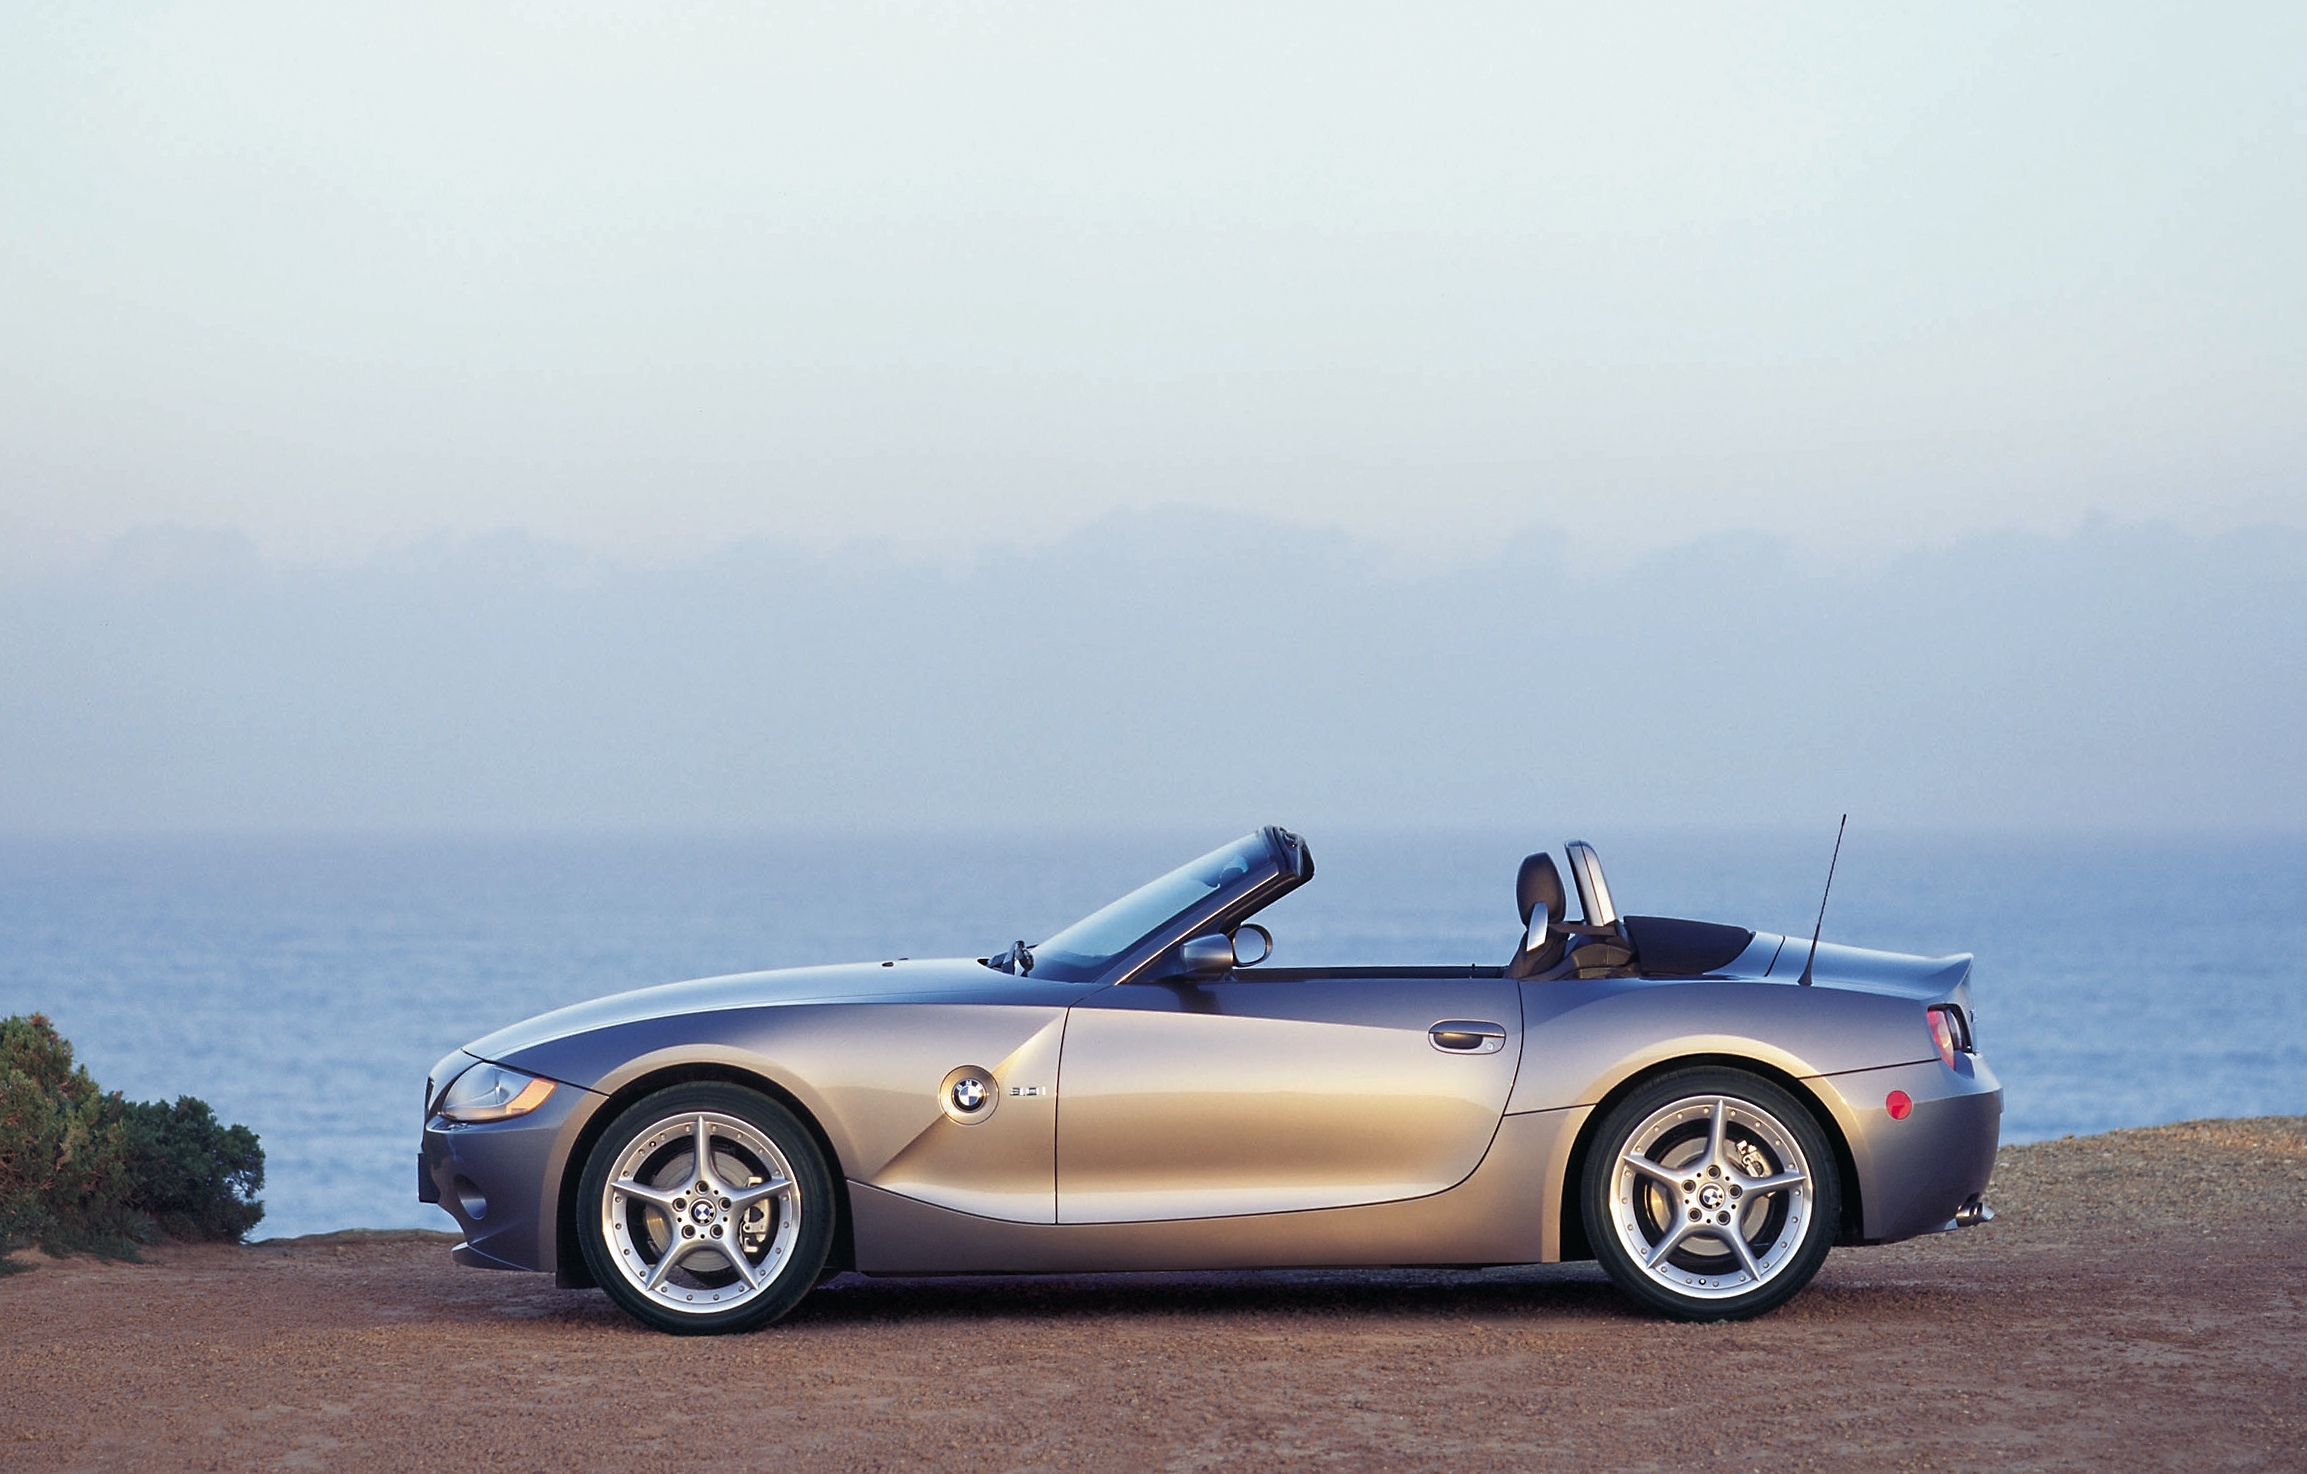 The Z4's design makes it hard to miss